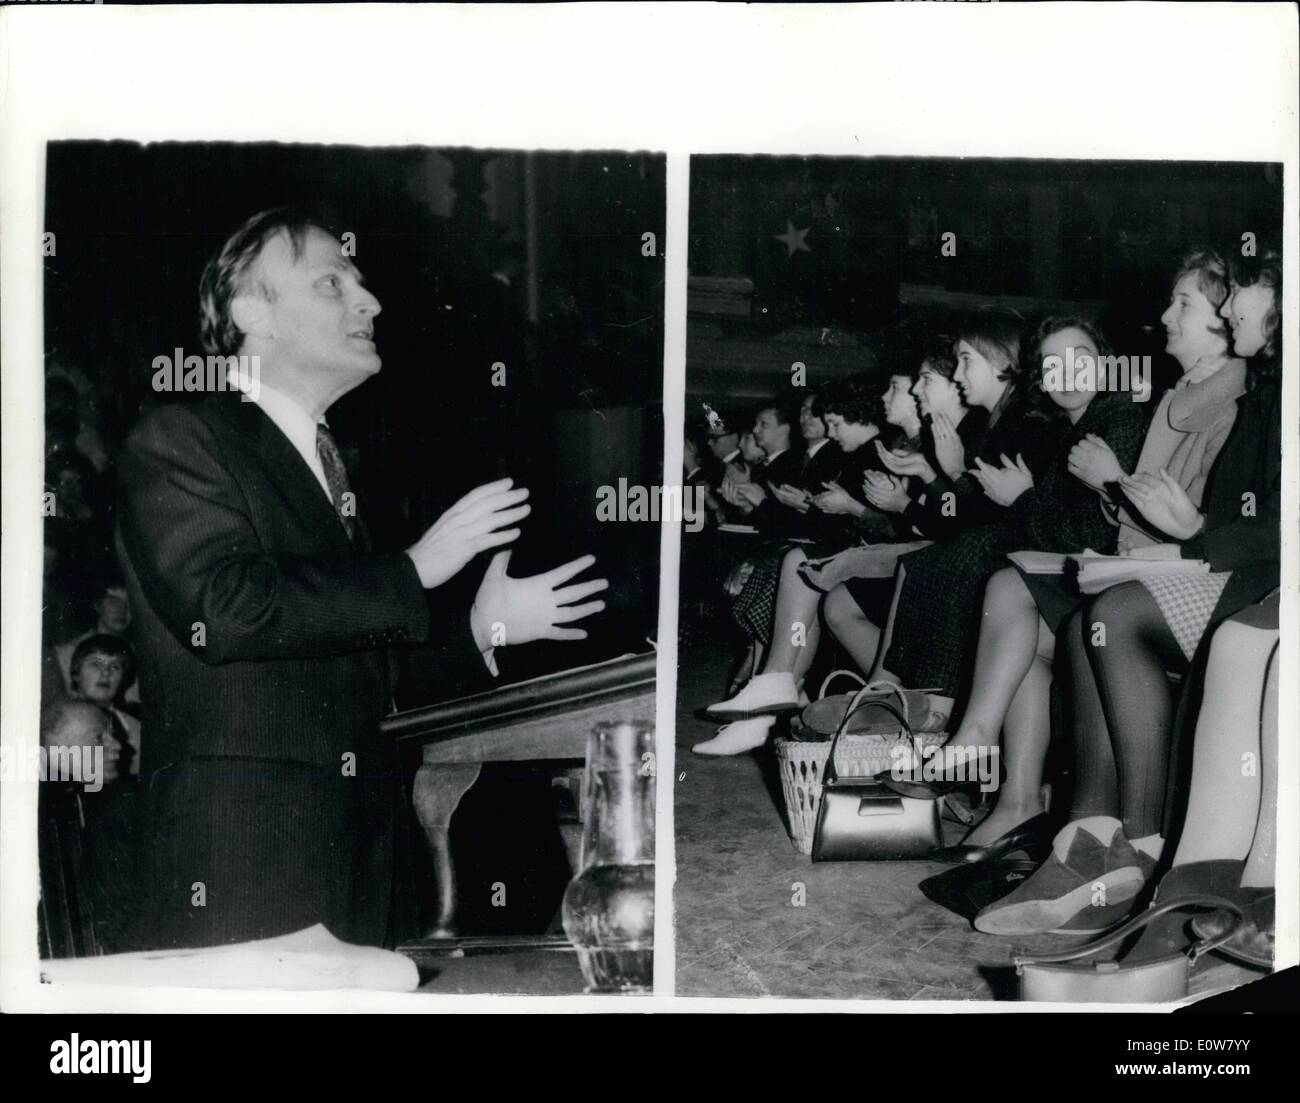 Jan. 01, 1962 - CEWC Lectures Open Today- The Nineteenth Christmas Holiday Lectures sponsored by the Council for Education in World Citizenship opened today at Central Hall in London. Photos Show: LEFT: Mr. Yehudi Menuhin, who formally opened the Conference, speaking - RIGHT: -Members of the audience applauding one of the speakers during the first session this morning. elh Keystone ML/739234/37 - Stock Image